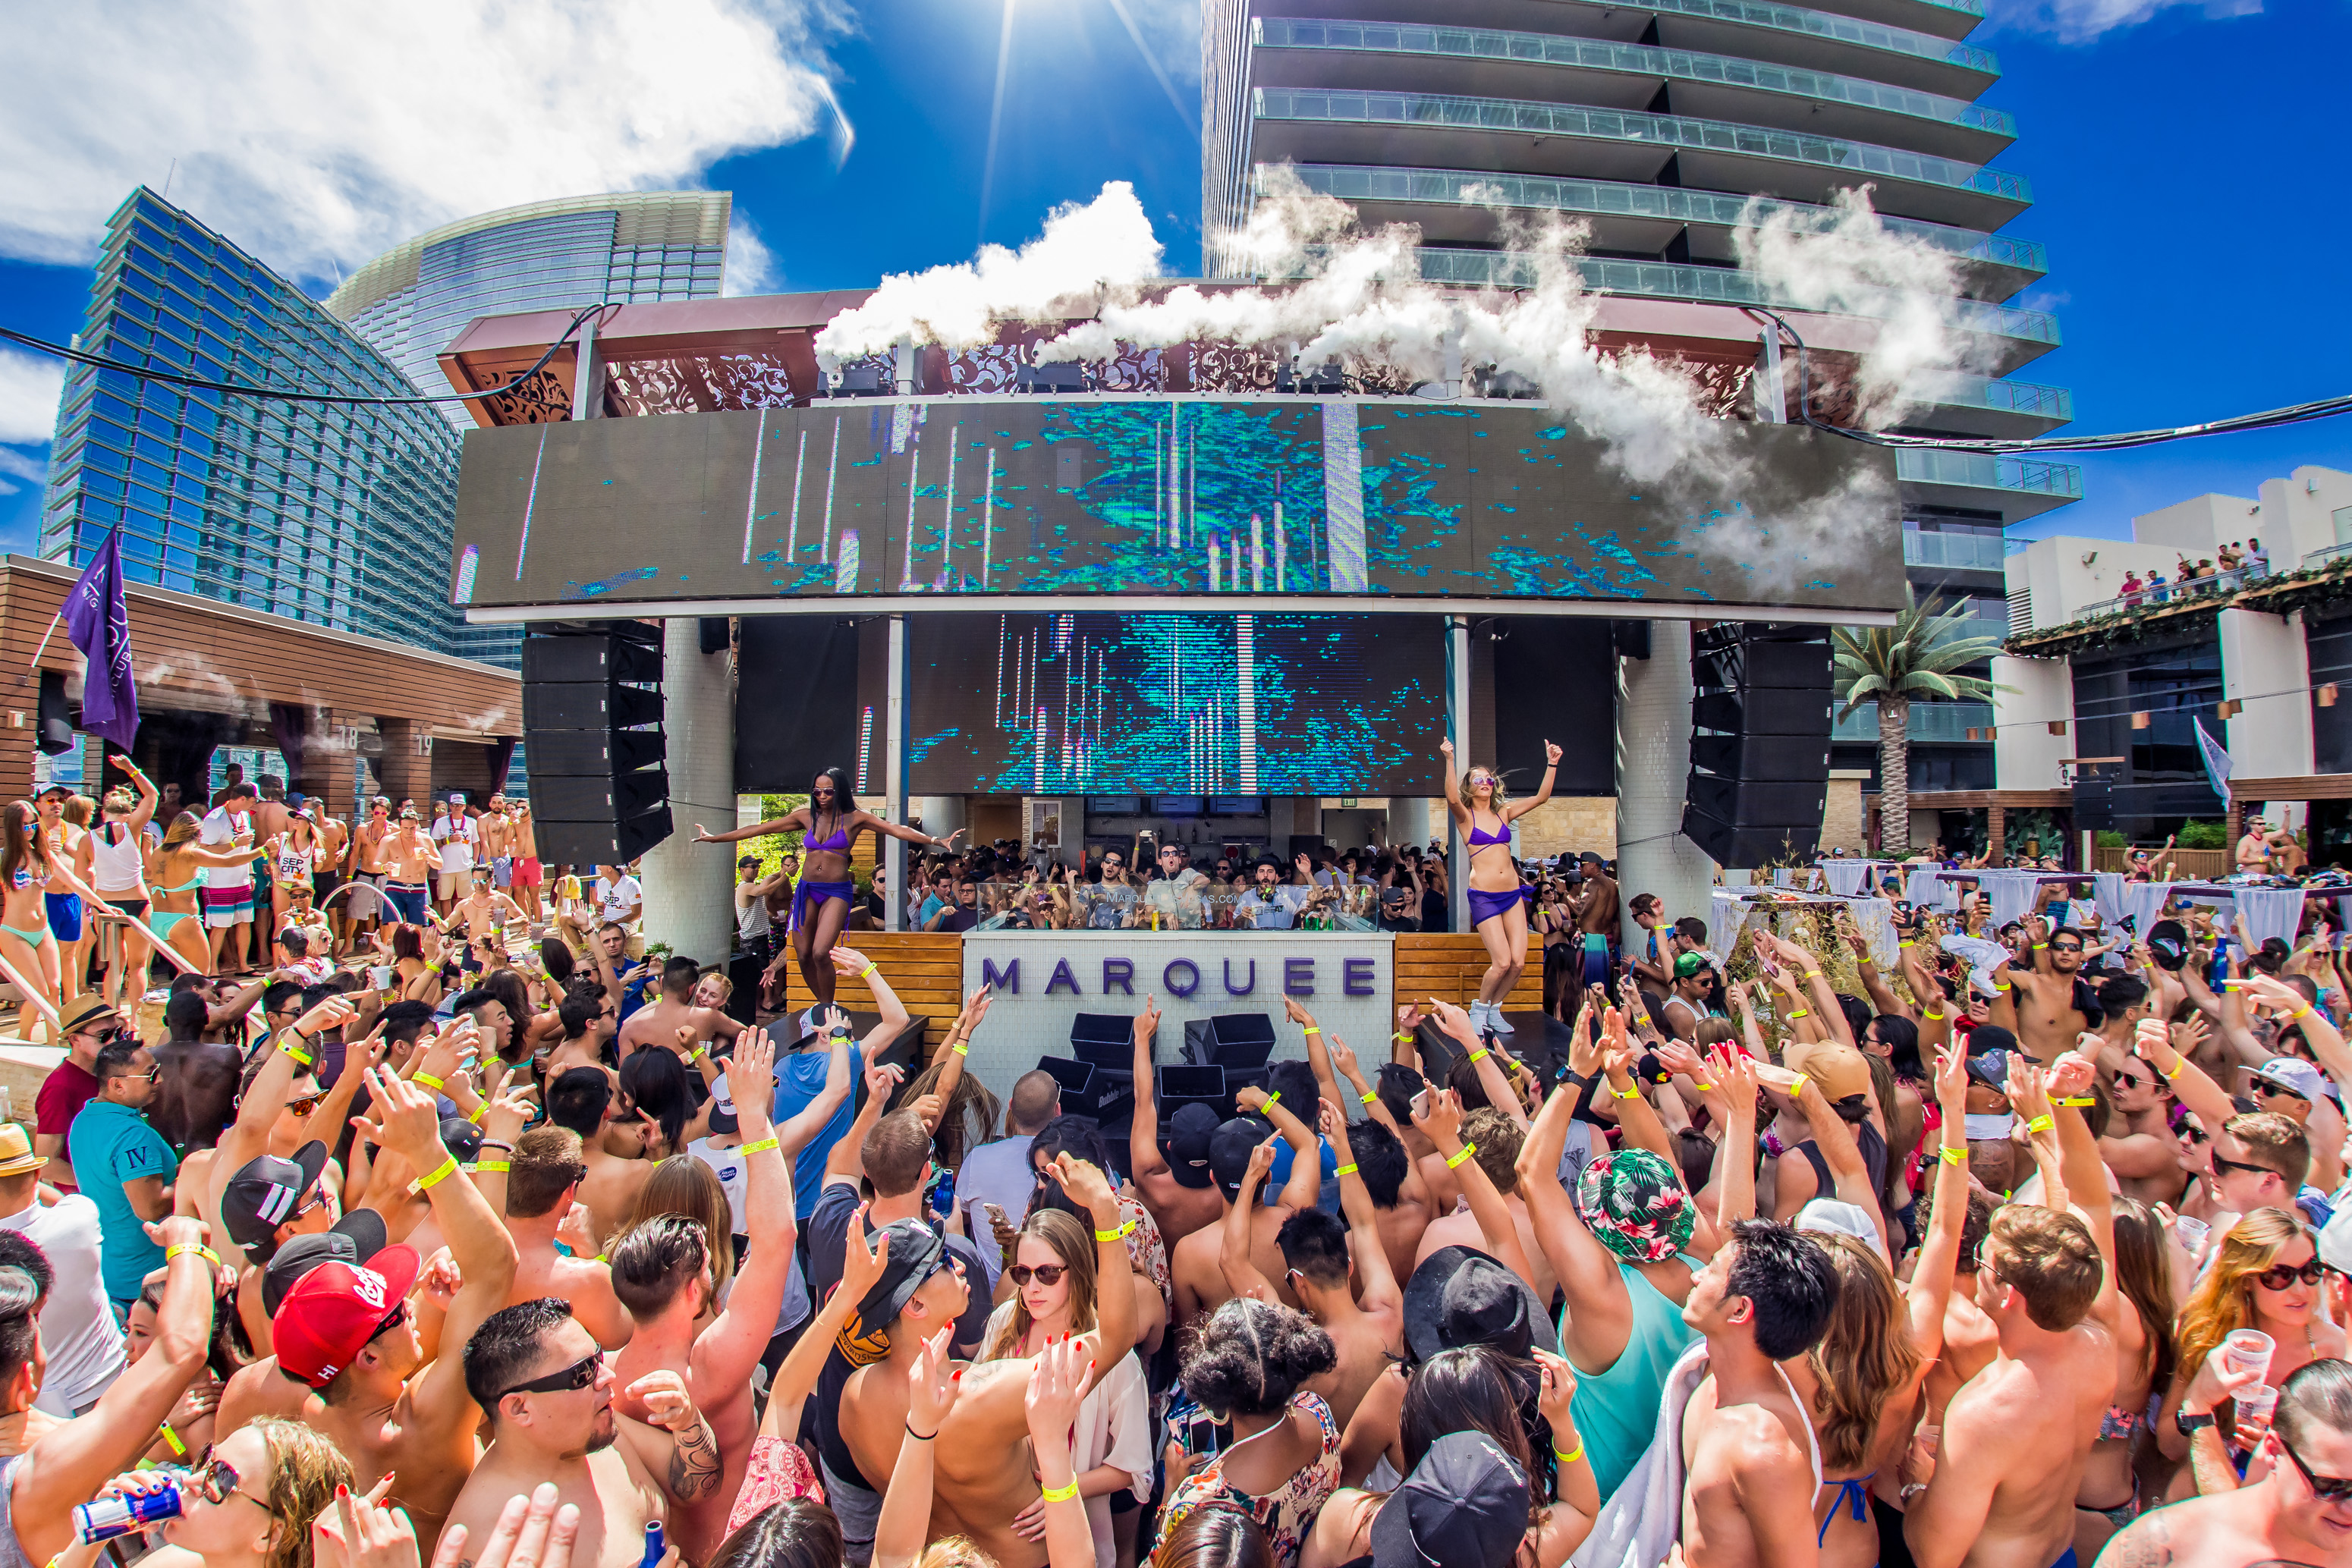 Vegas Nightlife Continues To Evolve With Marquee Pool Las Vegas Weekly